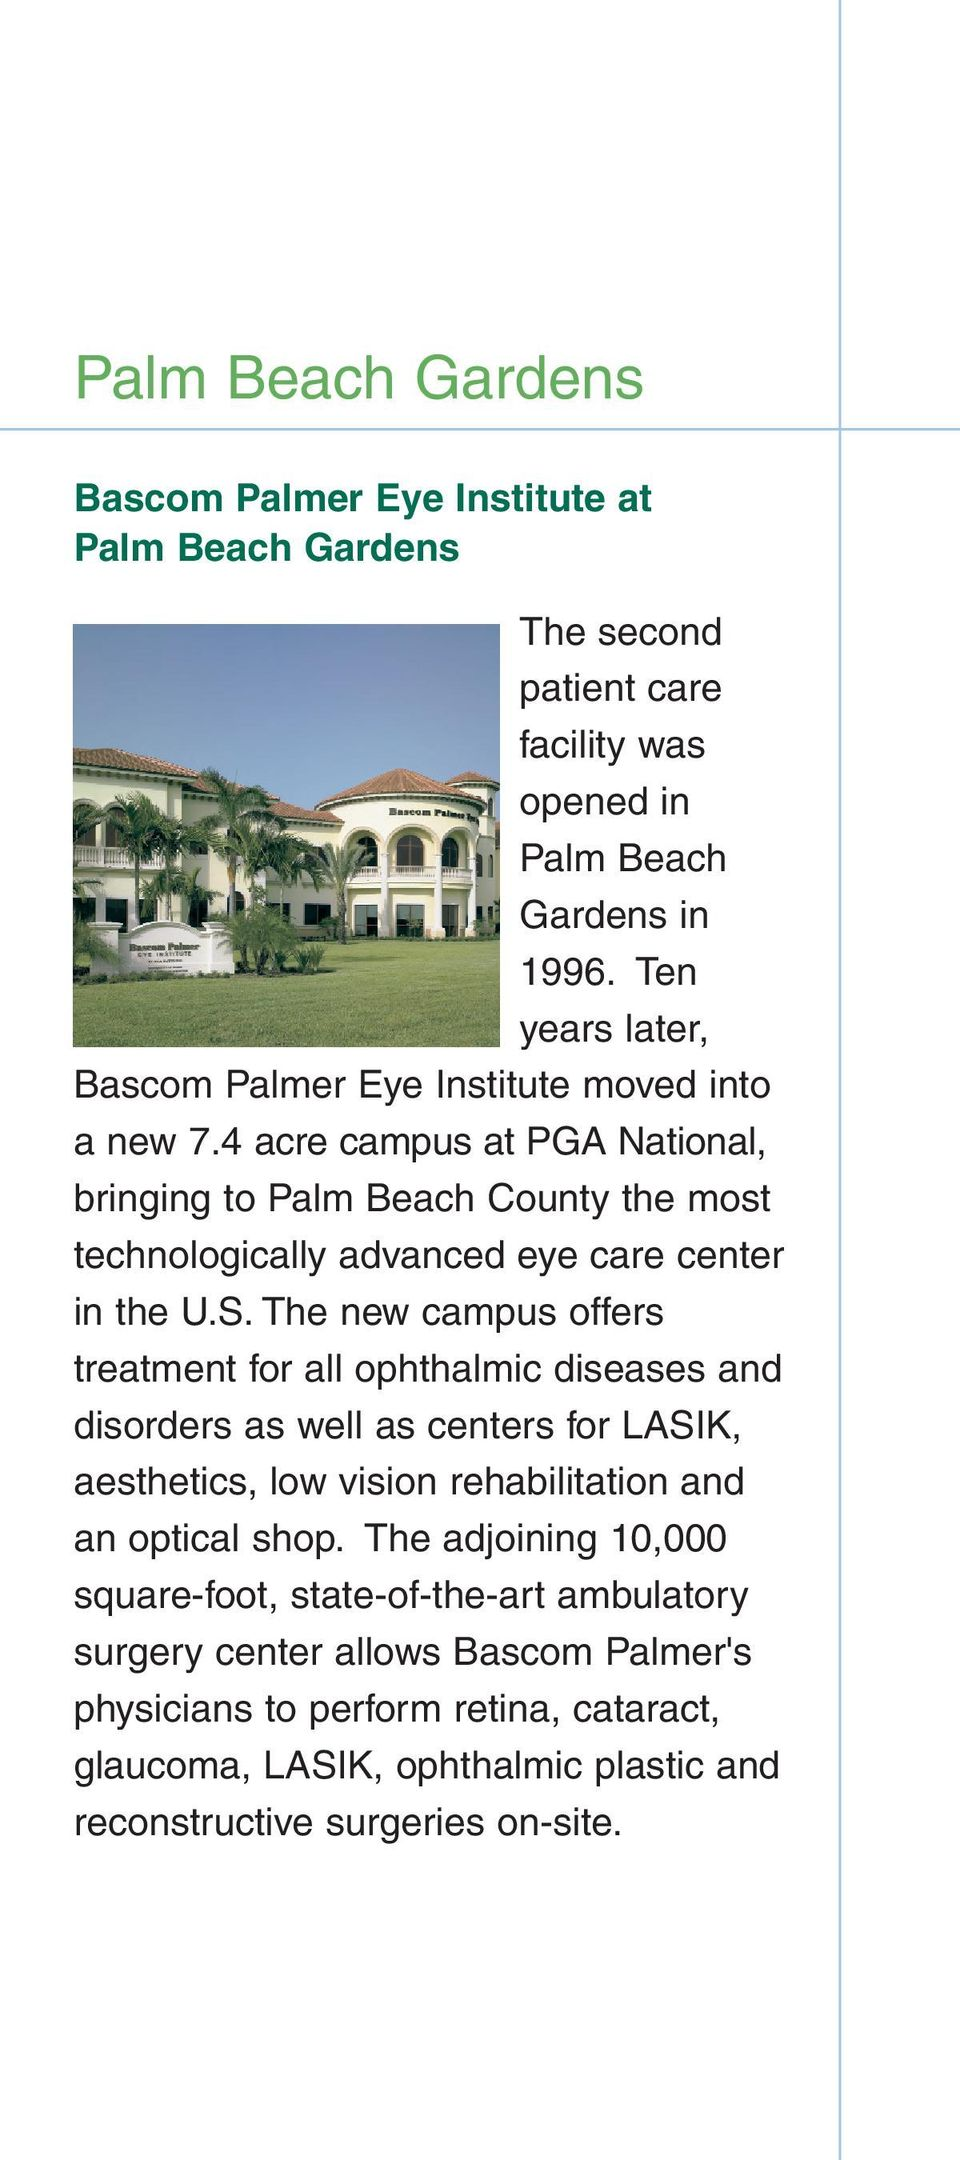 4 acre campus at PGA National, bringing to Palm Beach County the most technologically advanced eye care center in the U.S.